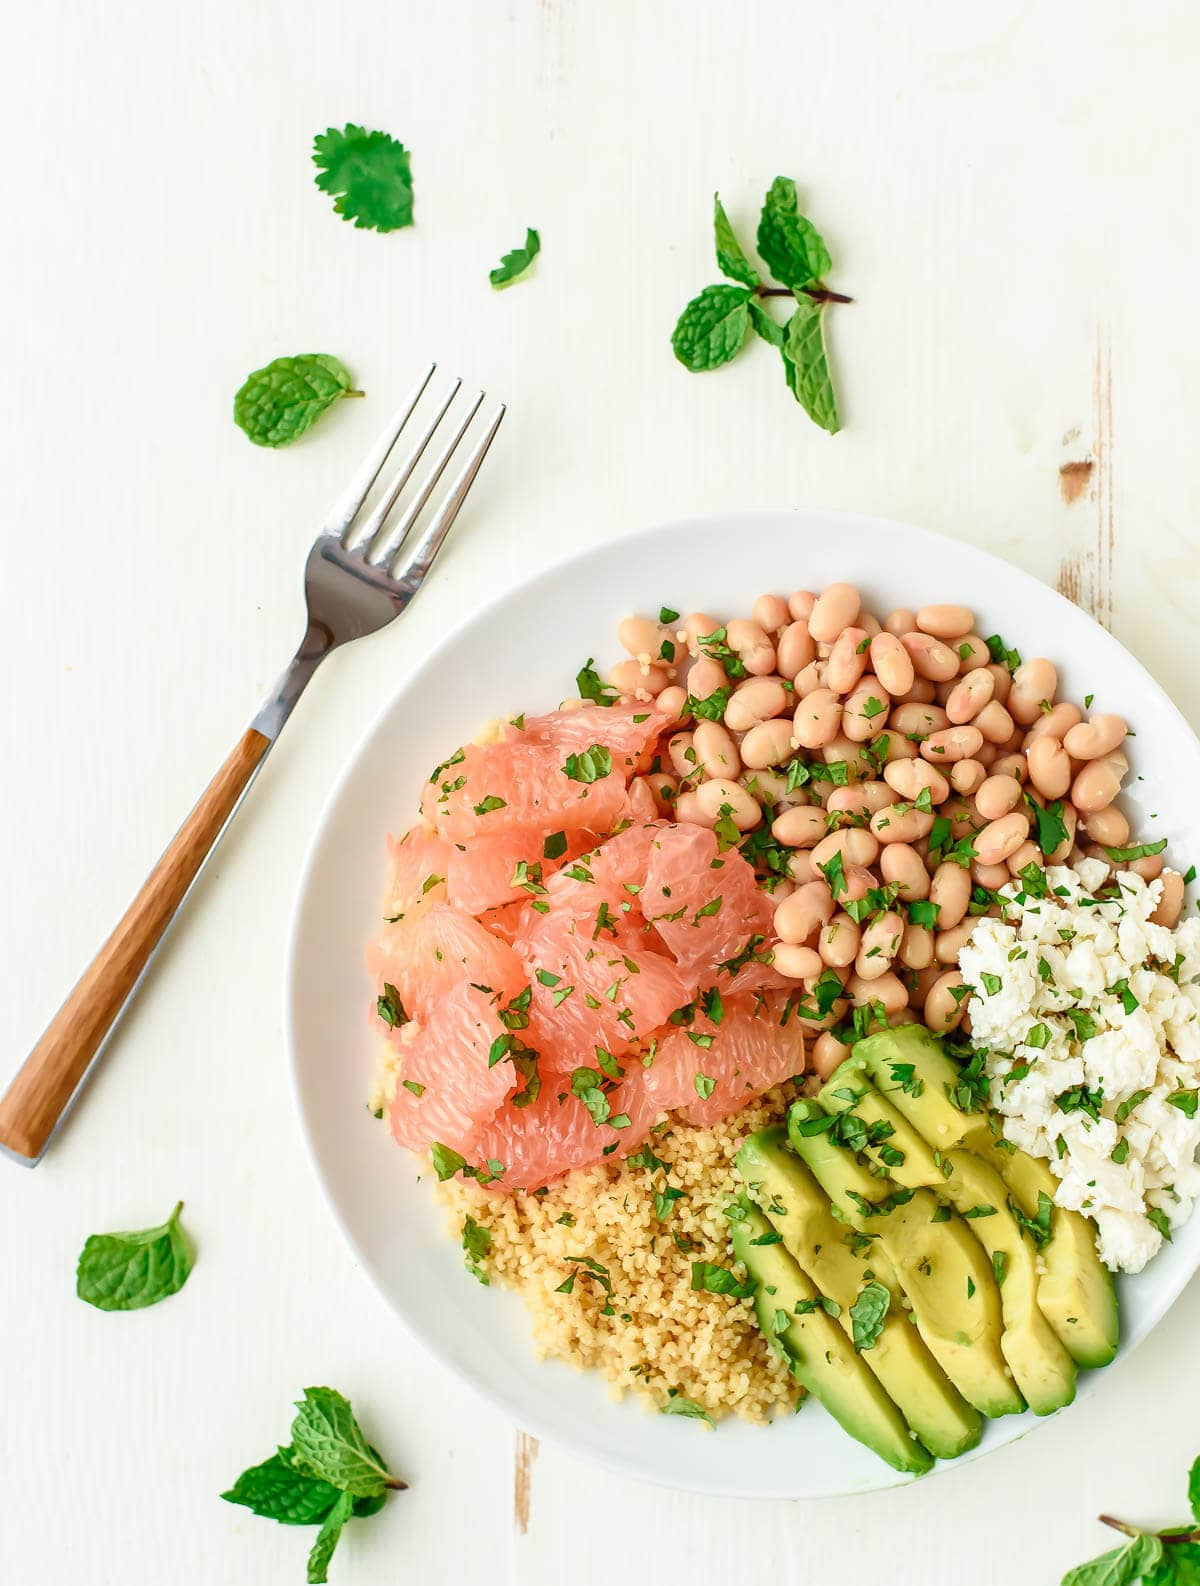 Avocado Grapefruit Salad with Couscous and White Beans. A healthy, satisfying and beautiful salad that's perfect for a light lunch or side.